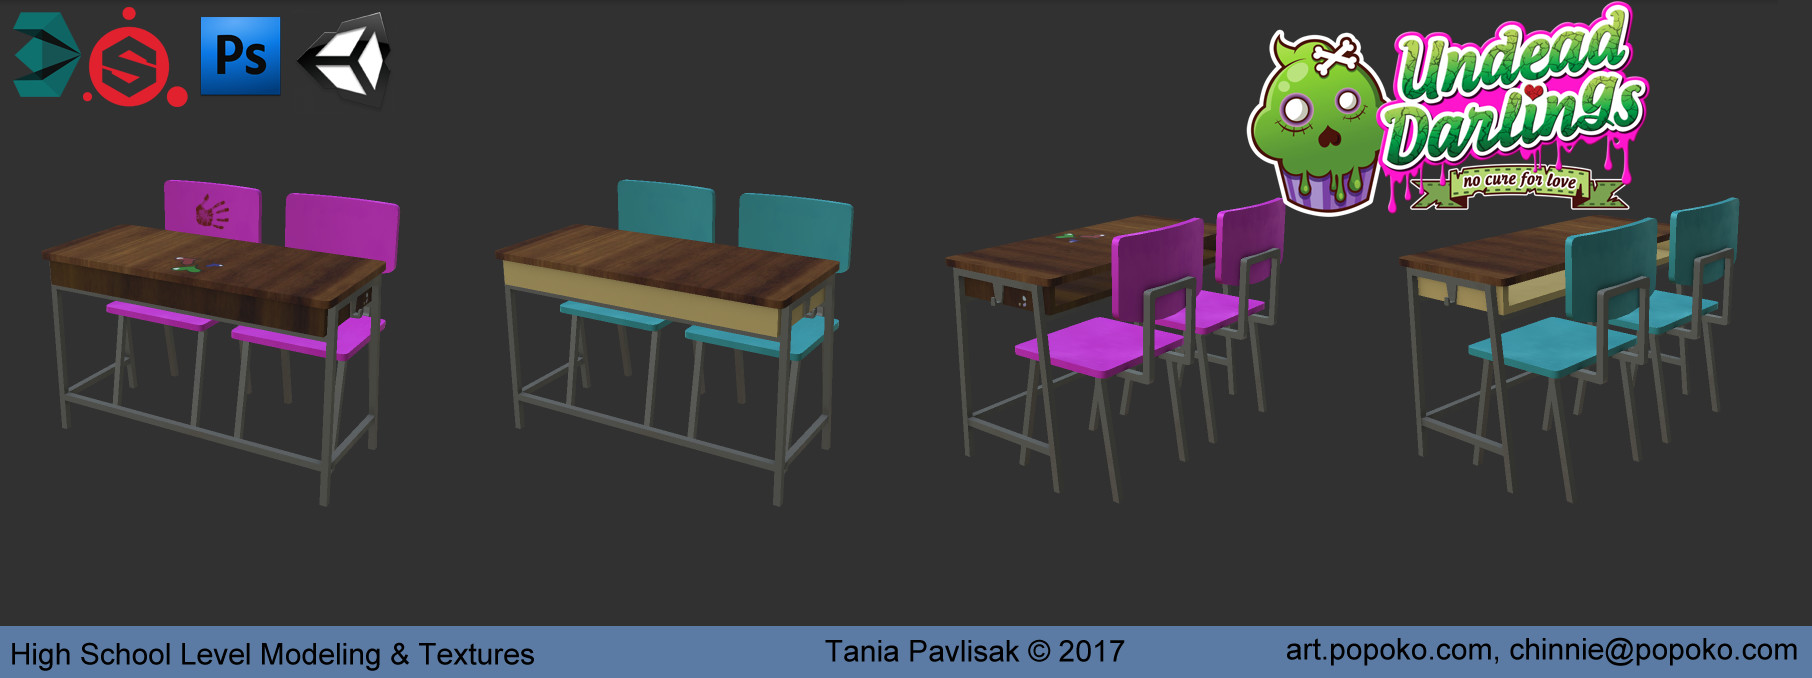 Tania pavlisak ud school kit chairdouble